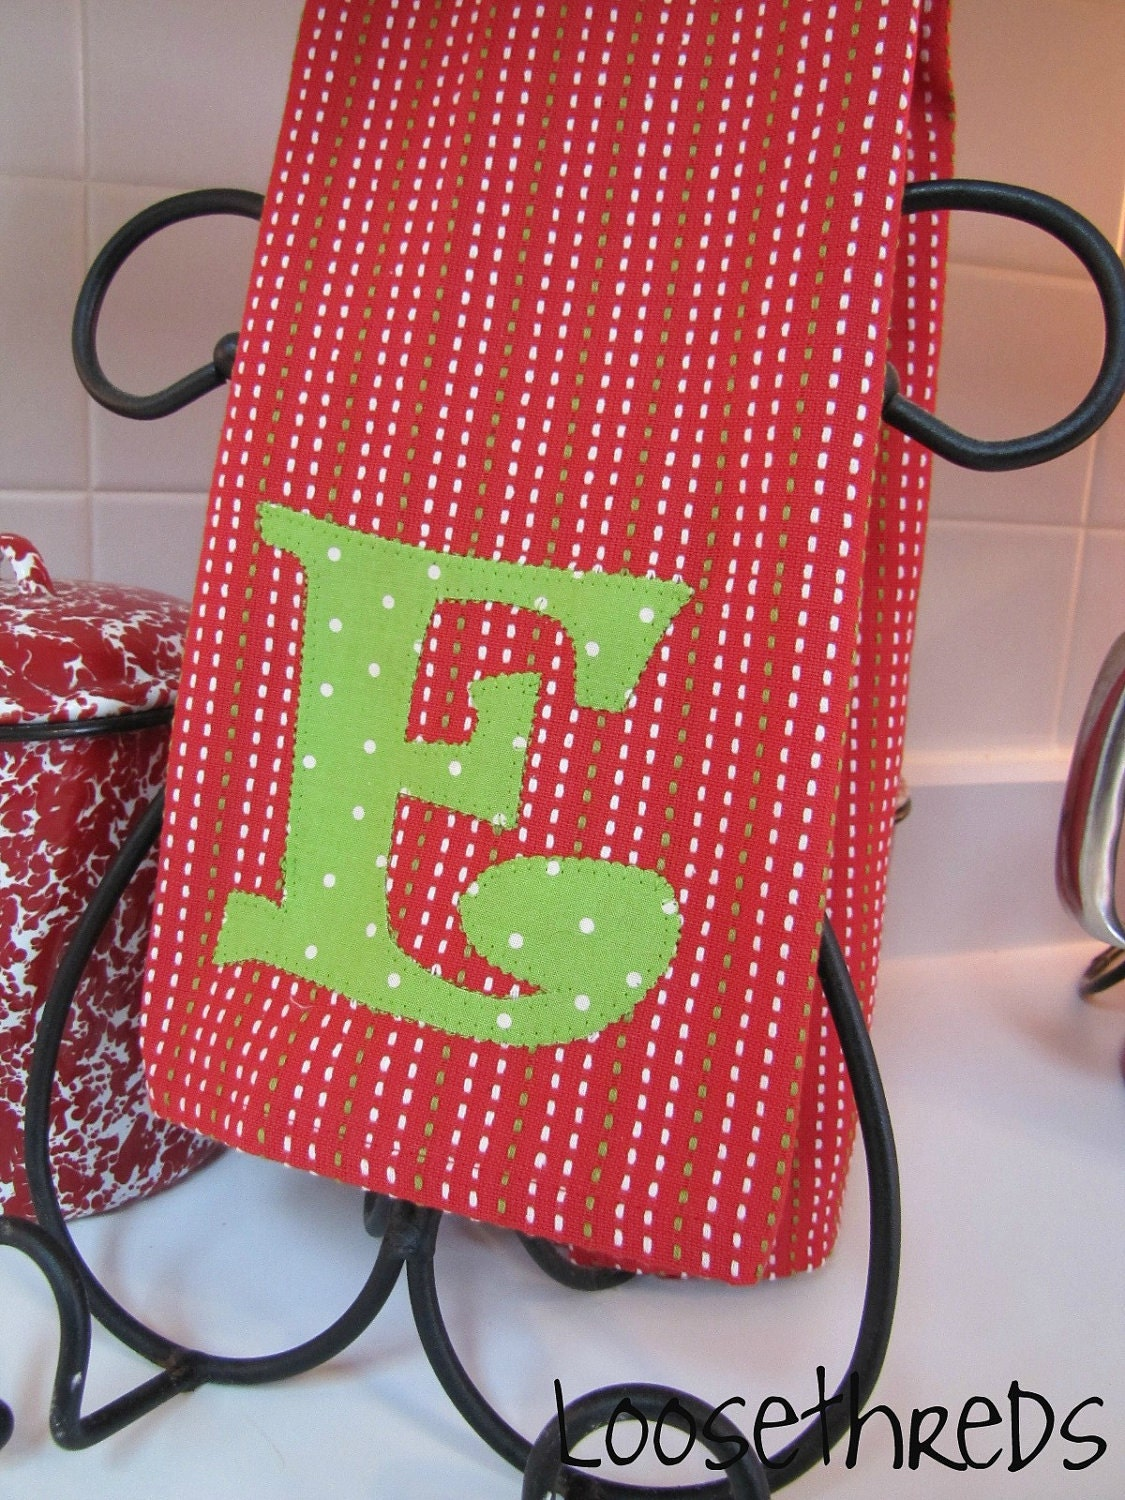 Custom Monogrammed Holiday Kitchen Towel By Loosethreds On Etsy